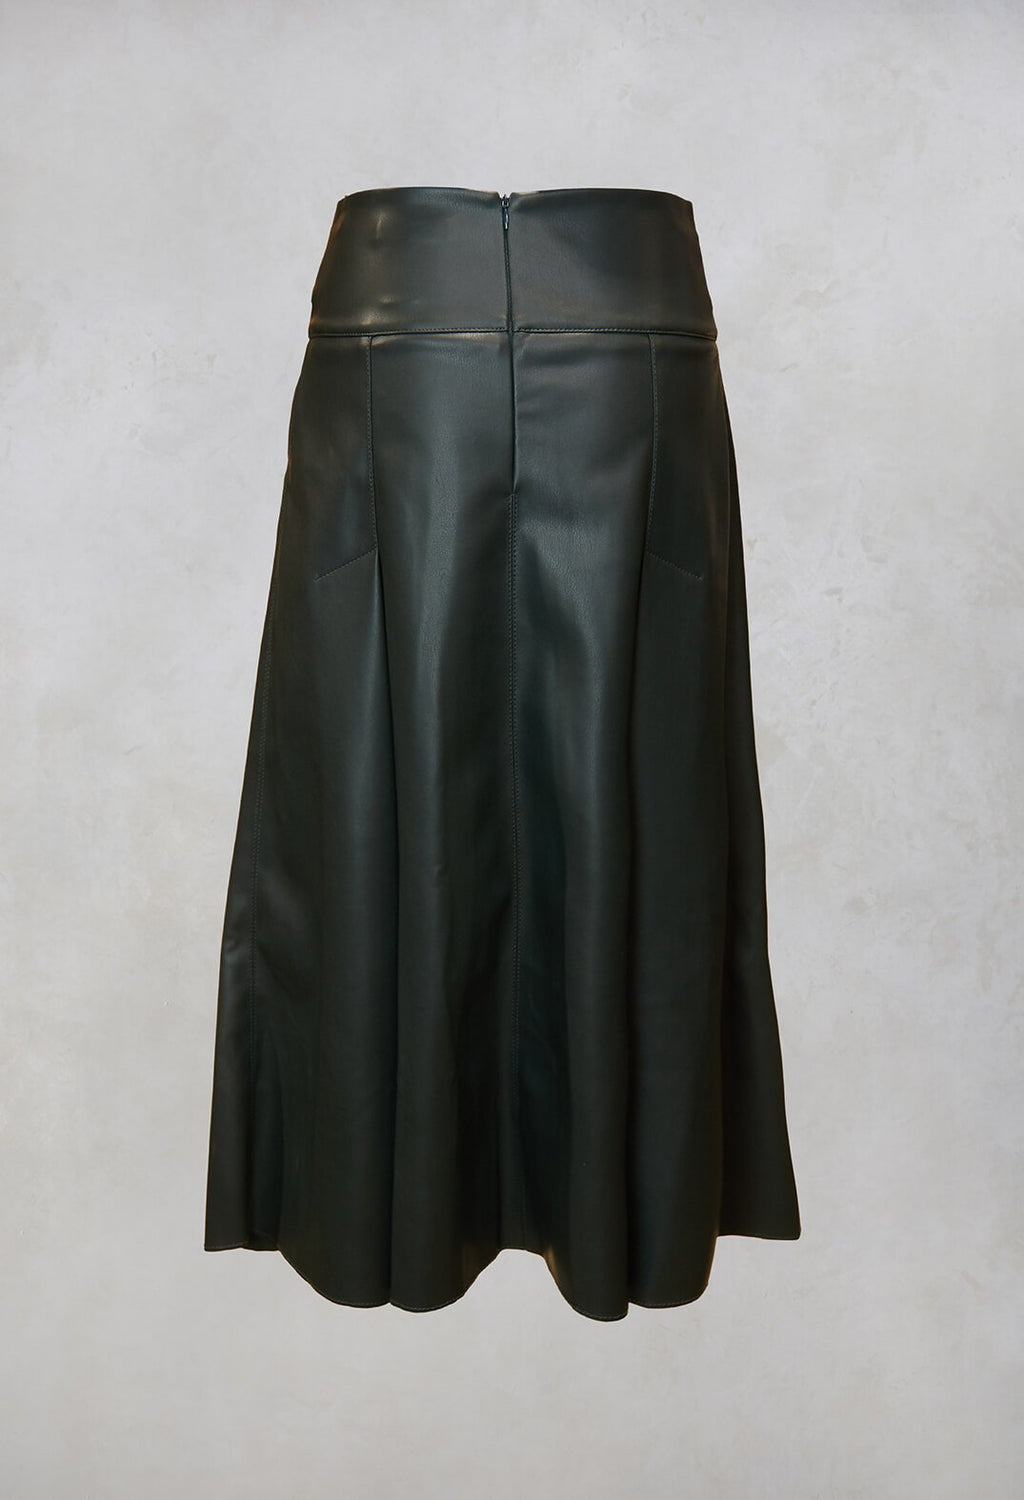 Faux Leather Skirt in Peacock Green